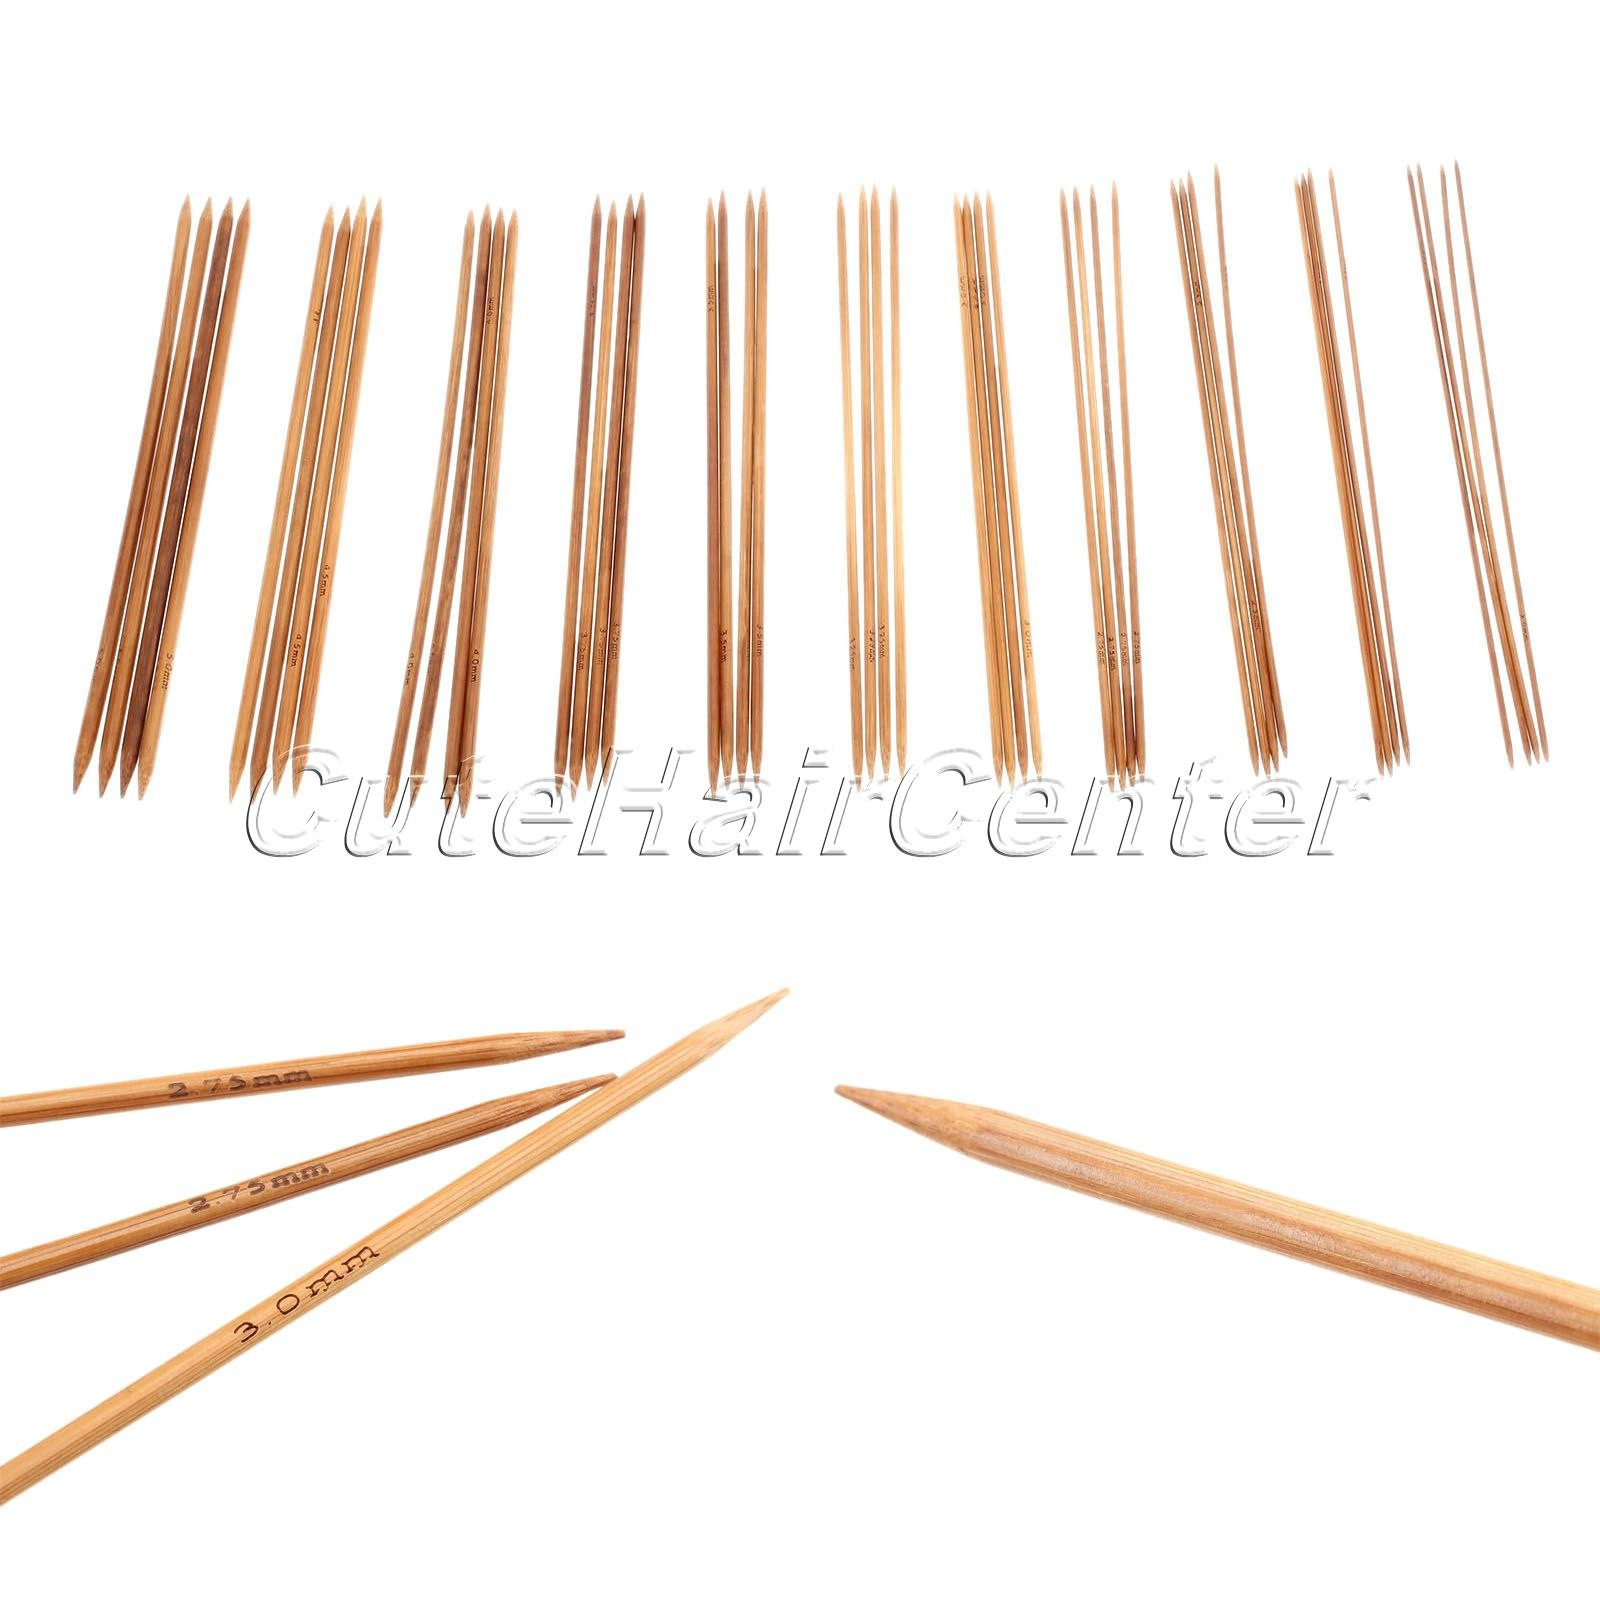 Fresh Hot Sale 55pcs 11sizes Double Pointed Carbonized Bamboo Double Pointed Knitting Needles Of Lovely 40 Ideas Double Pointed Knitting Needles